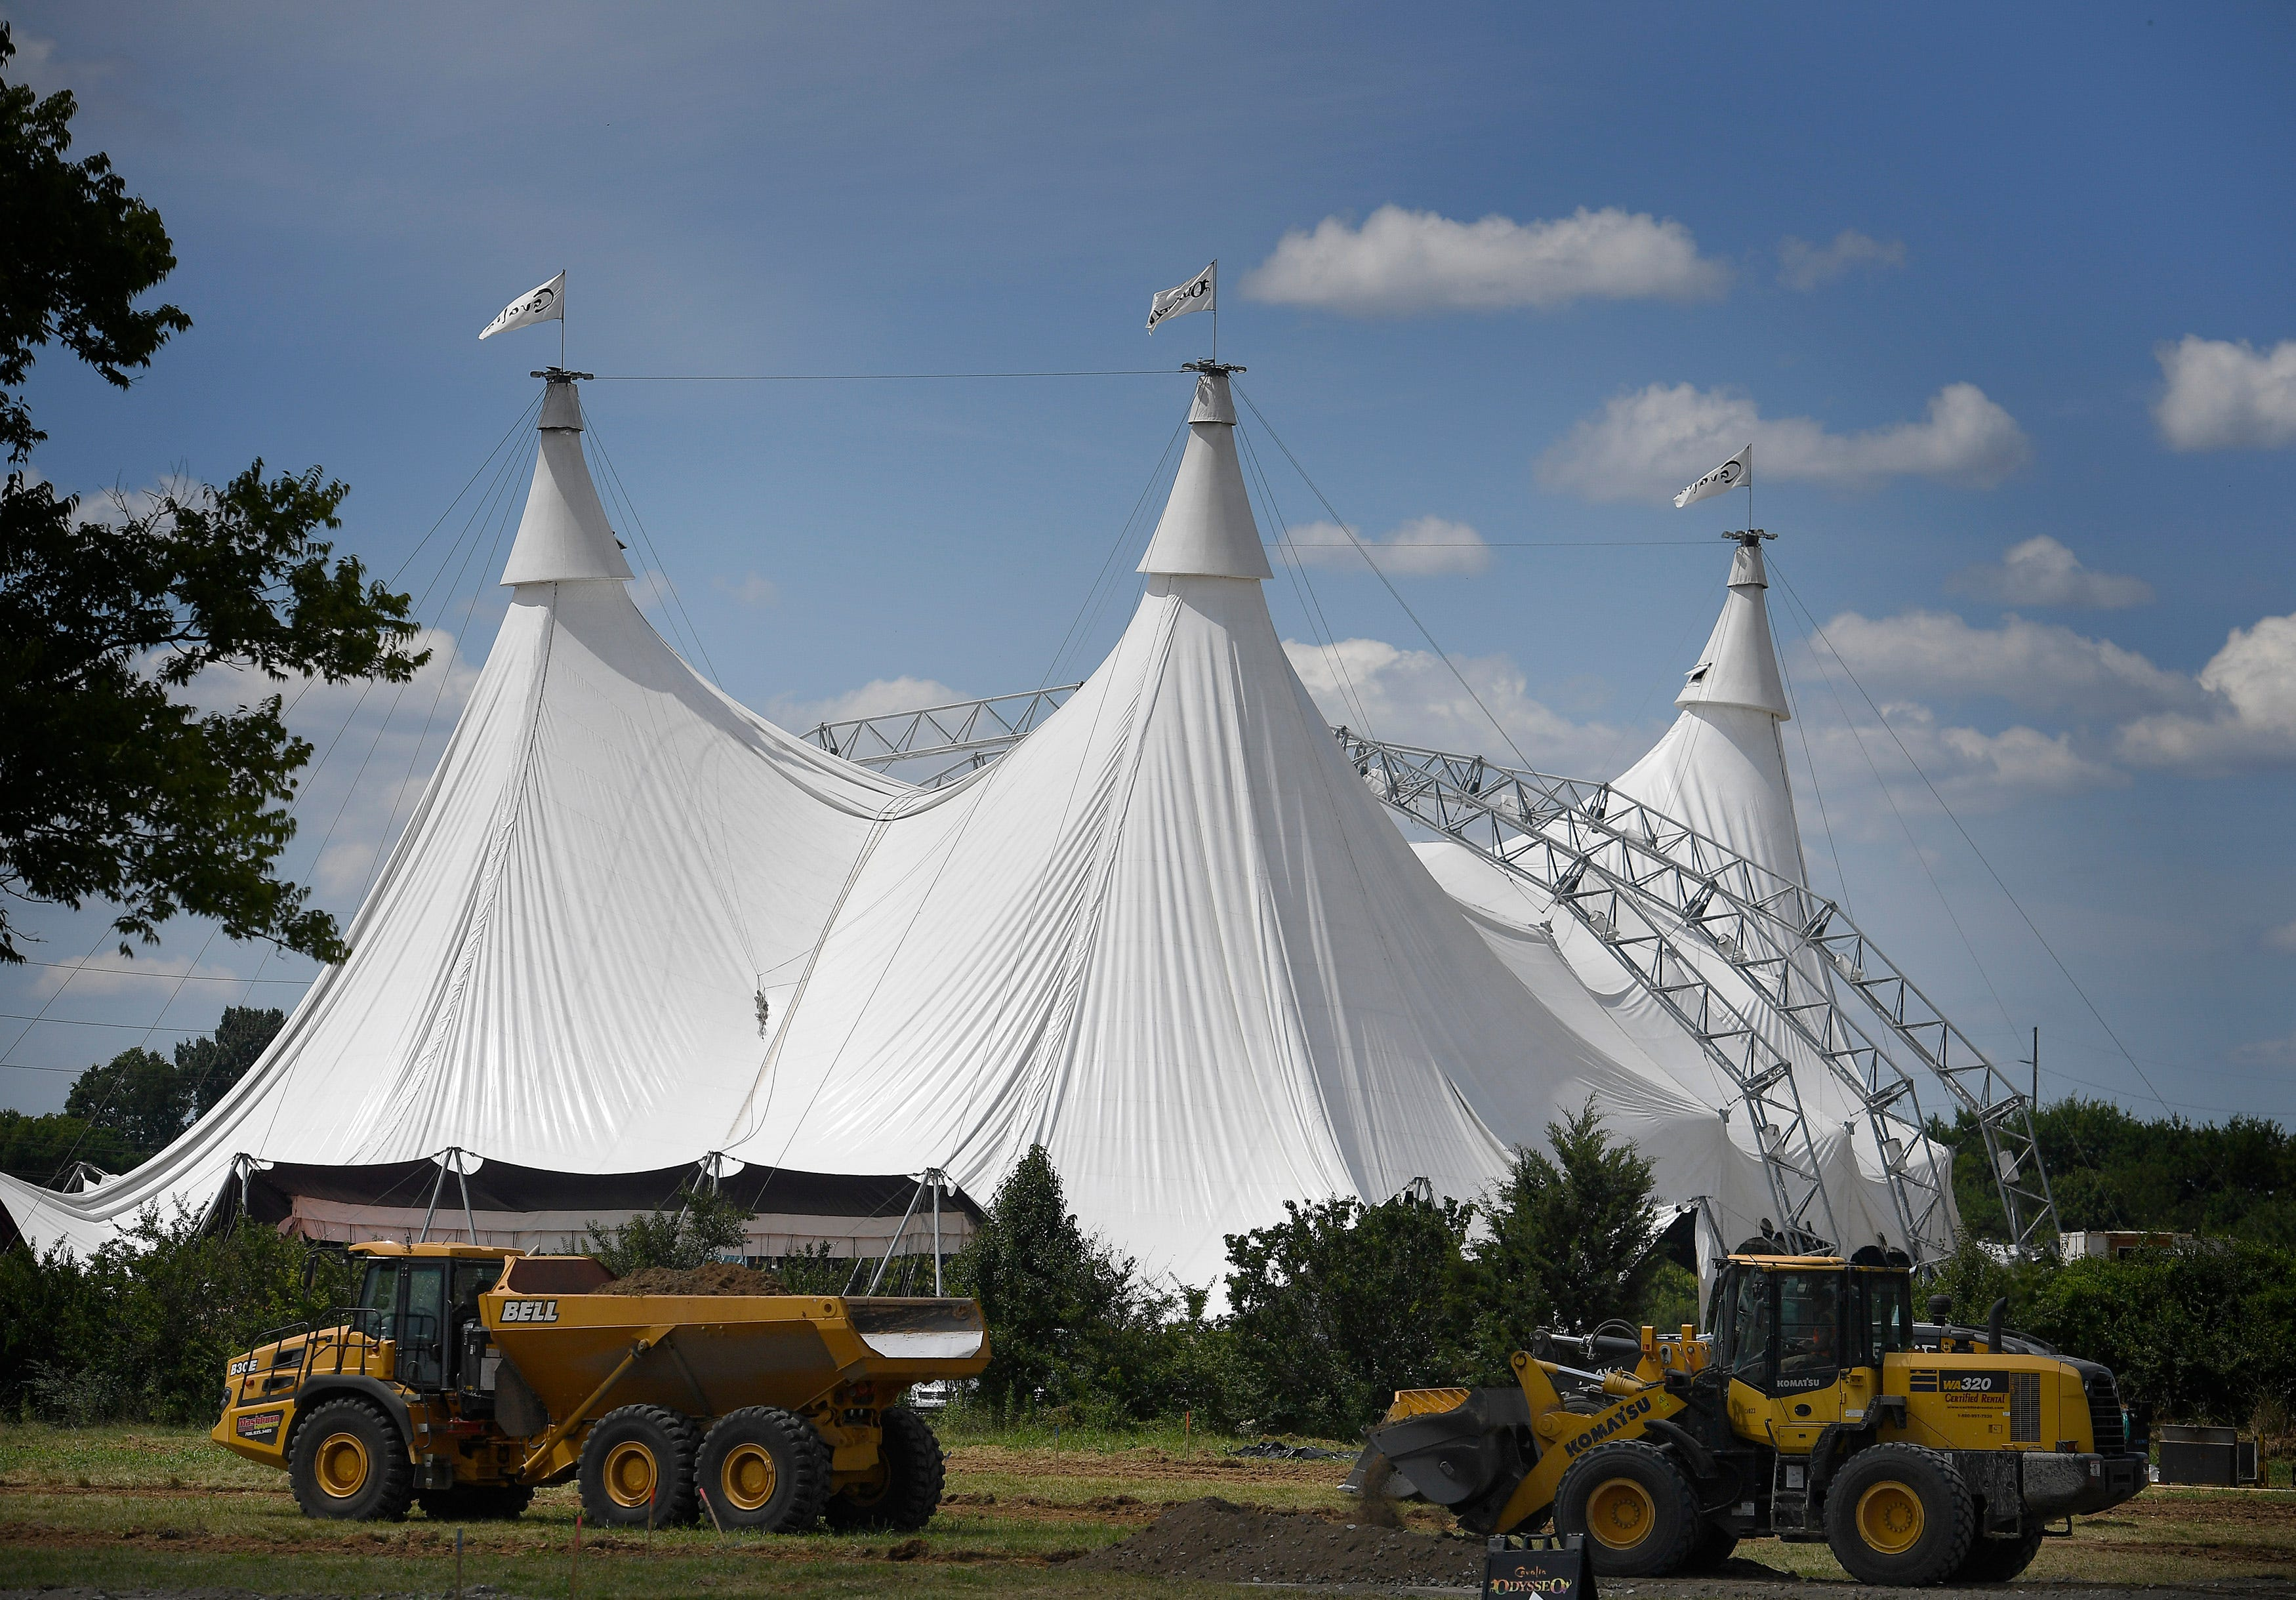 & Worldu0027s largest touring tent raised in Nashville for u0027Odysseou0027 show